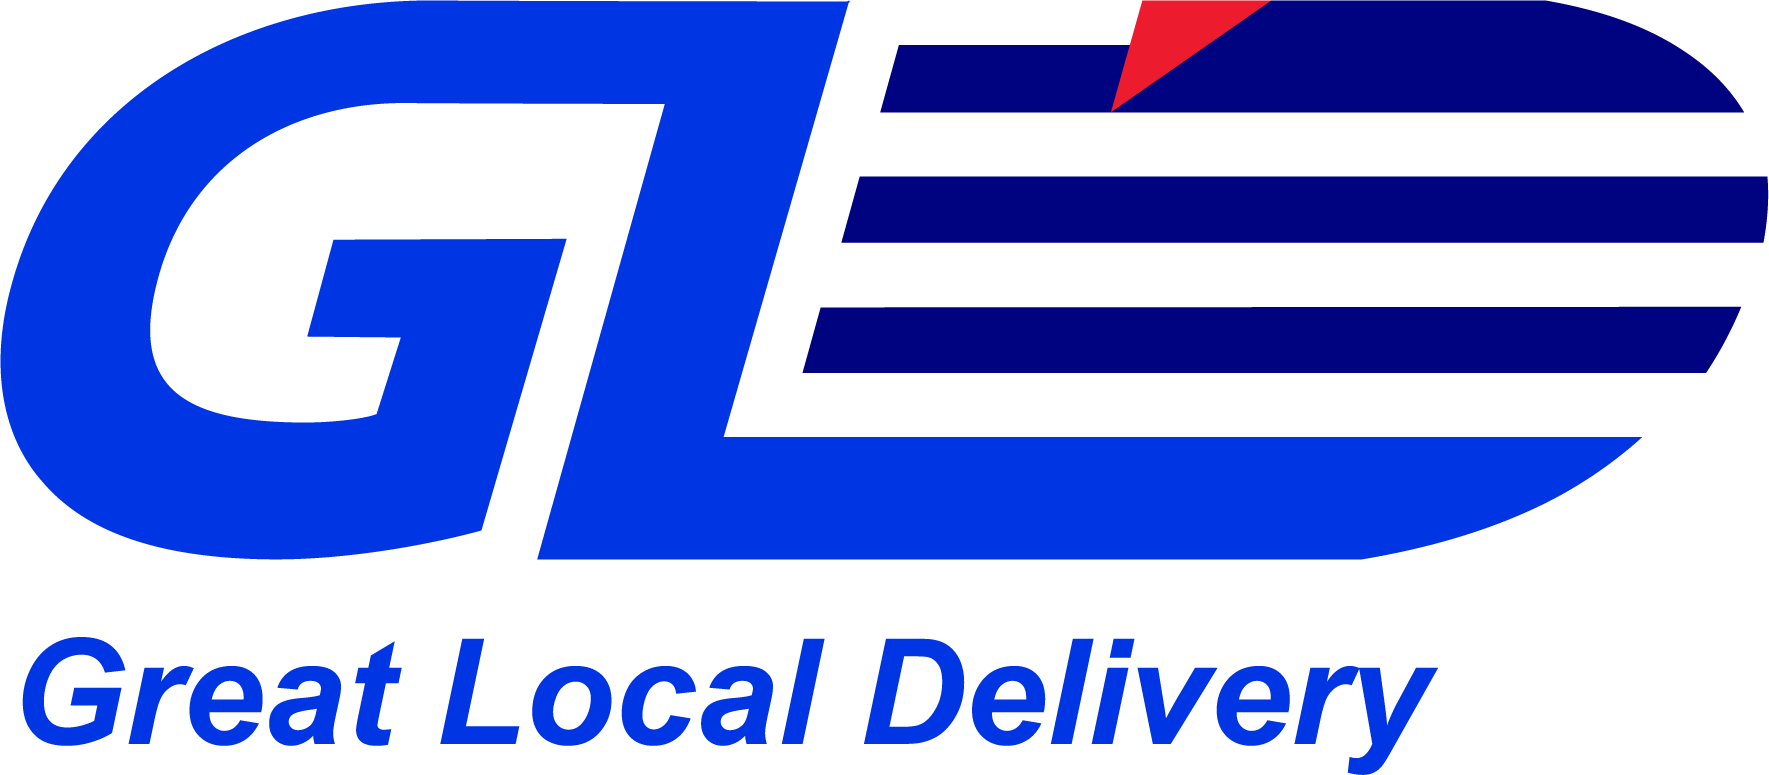 Great Local Delivery